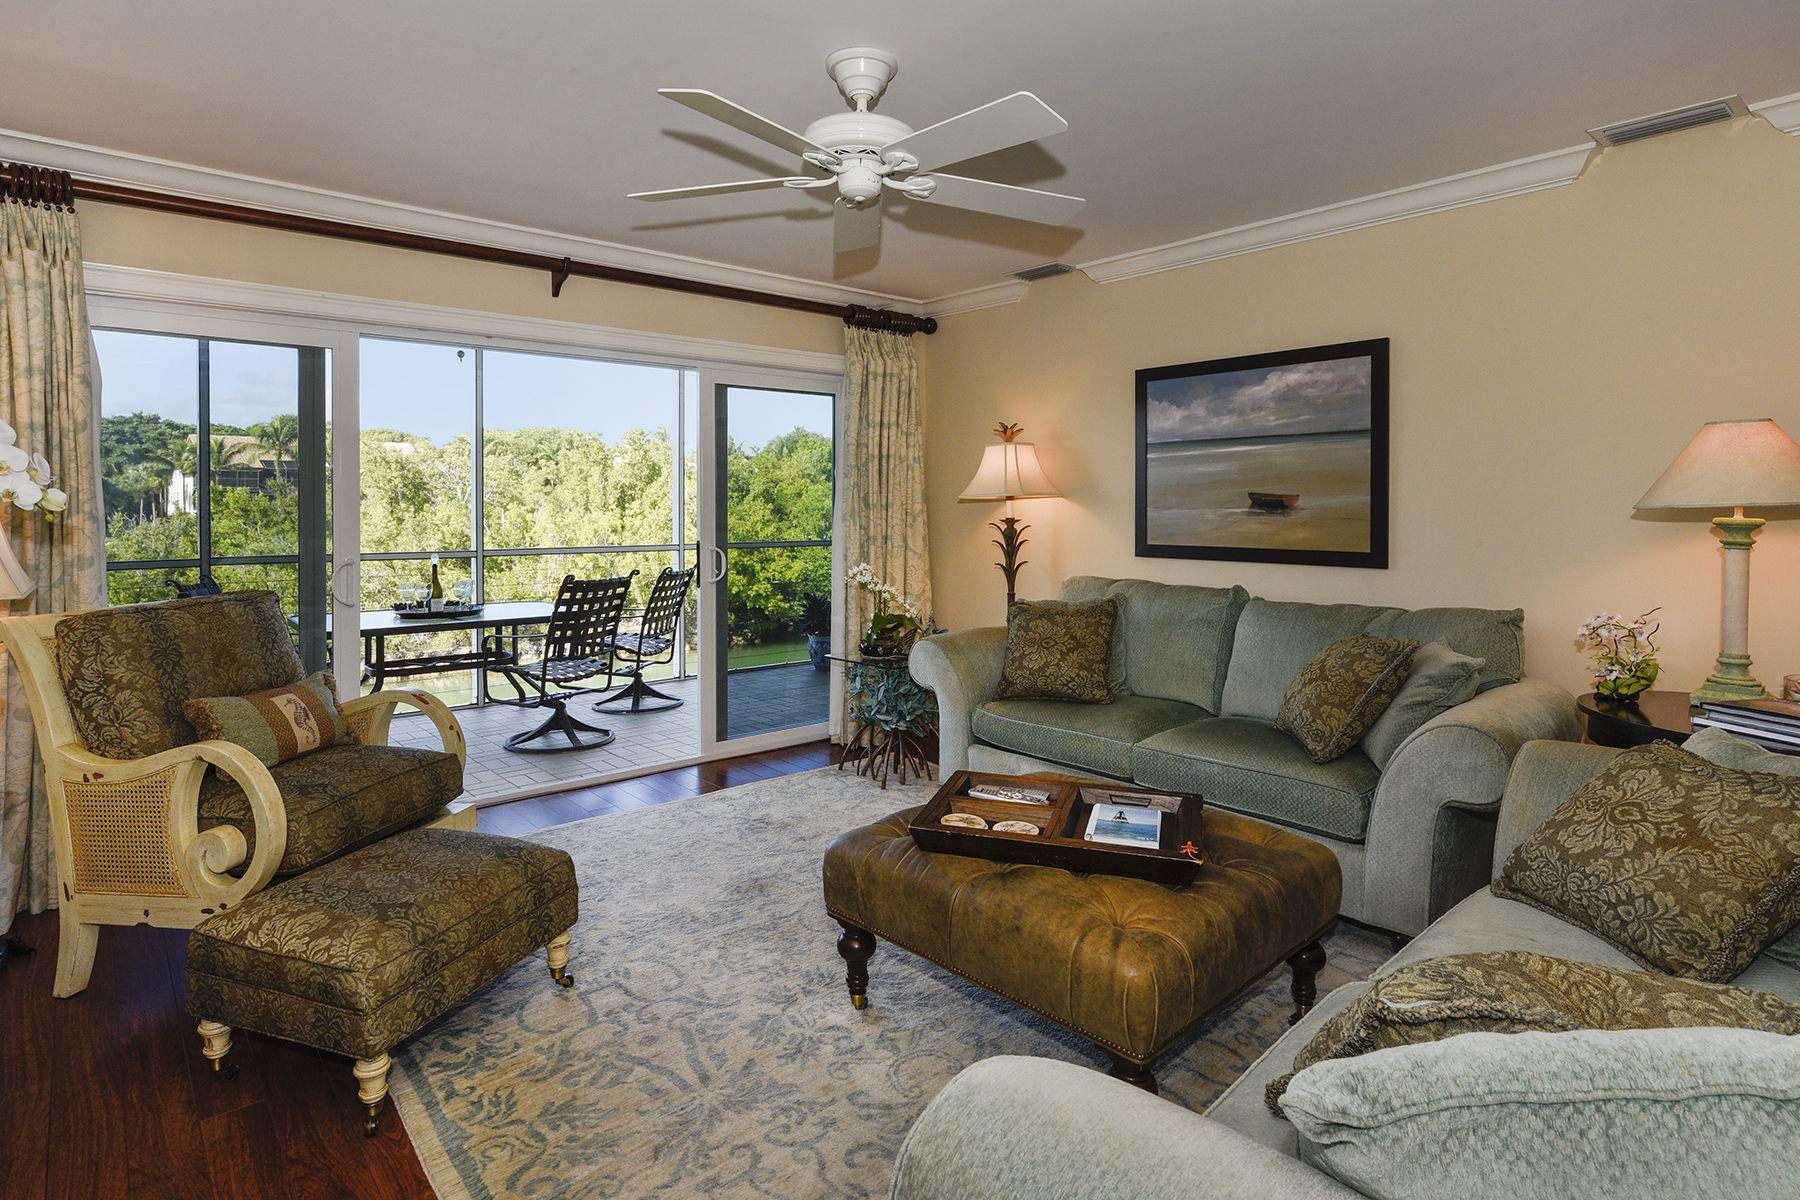 Condominio por un Venta en Waterfront Condominium at Ocean Reef 9 Landings, Unit A Key Largo, Florida 33037 Estados Unidos